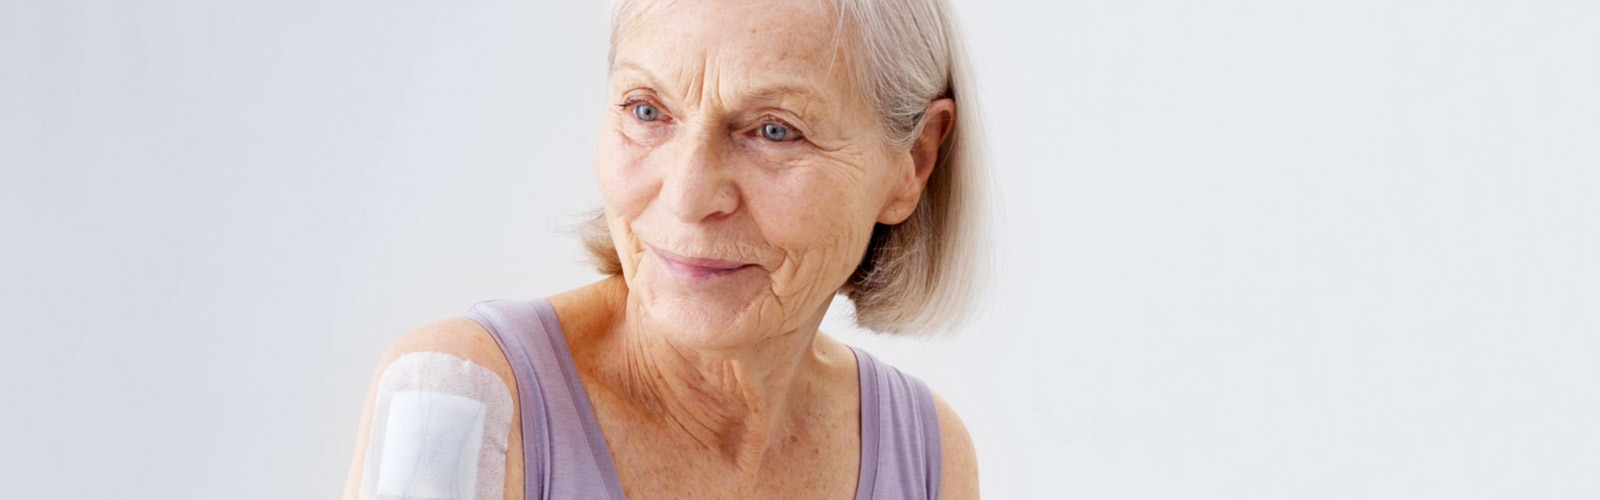 Almost pain-free and atraumatic dressing removal from an elderly woman's fragile skin.